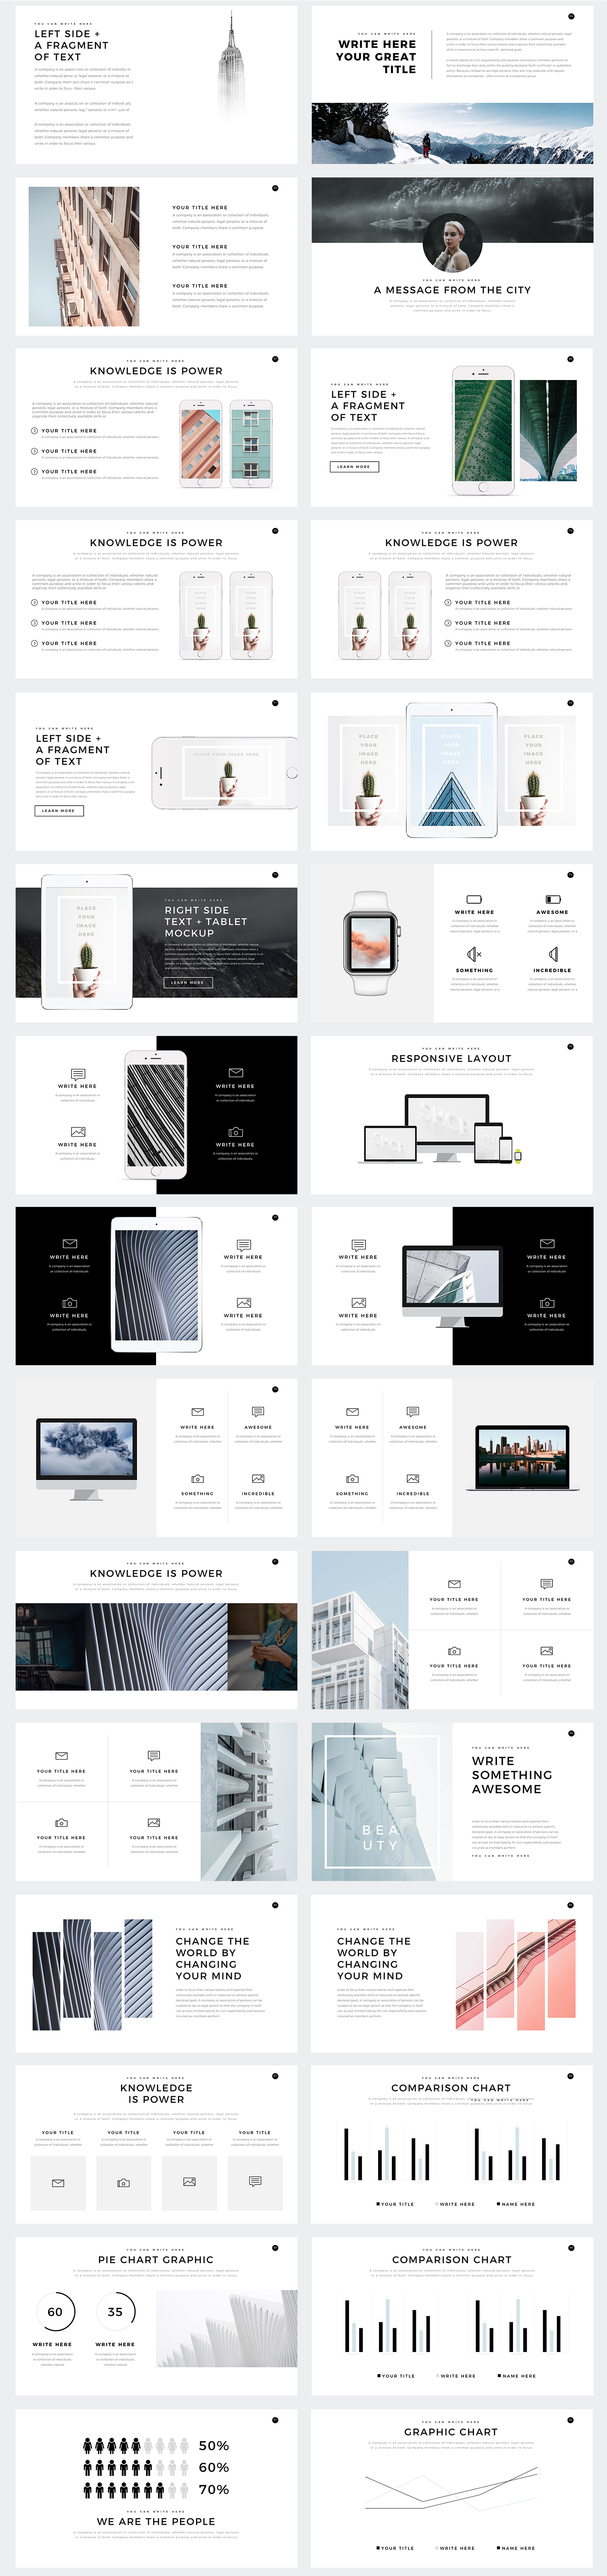 Starlight minimal powerpoint template pitch deck on behance starlight minimal powerpoint template pitch deck toneelgroepblik Choice Image